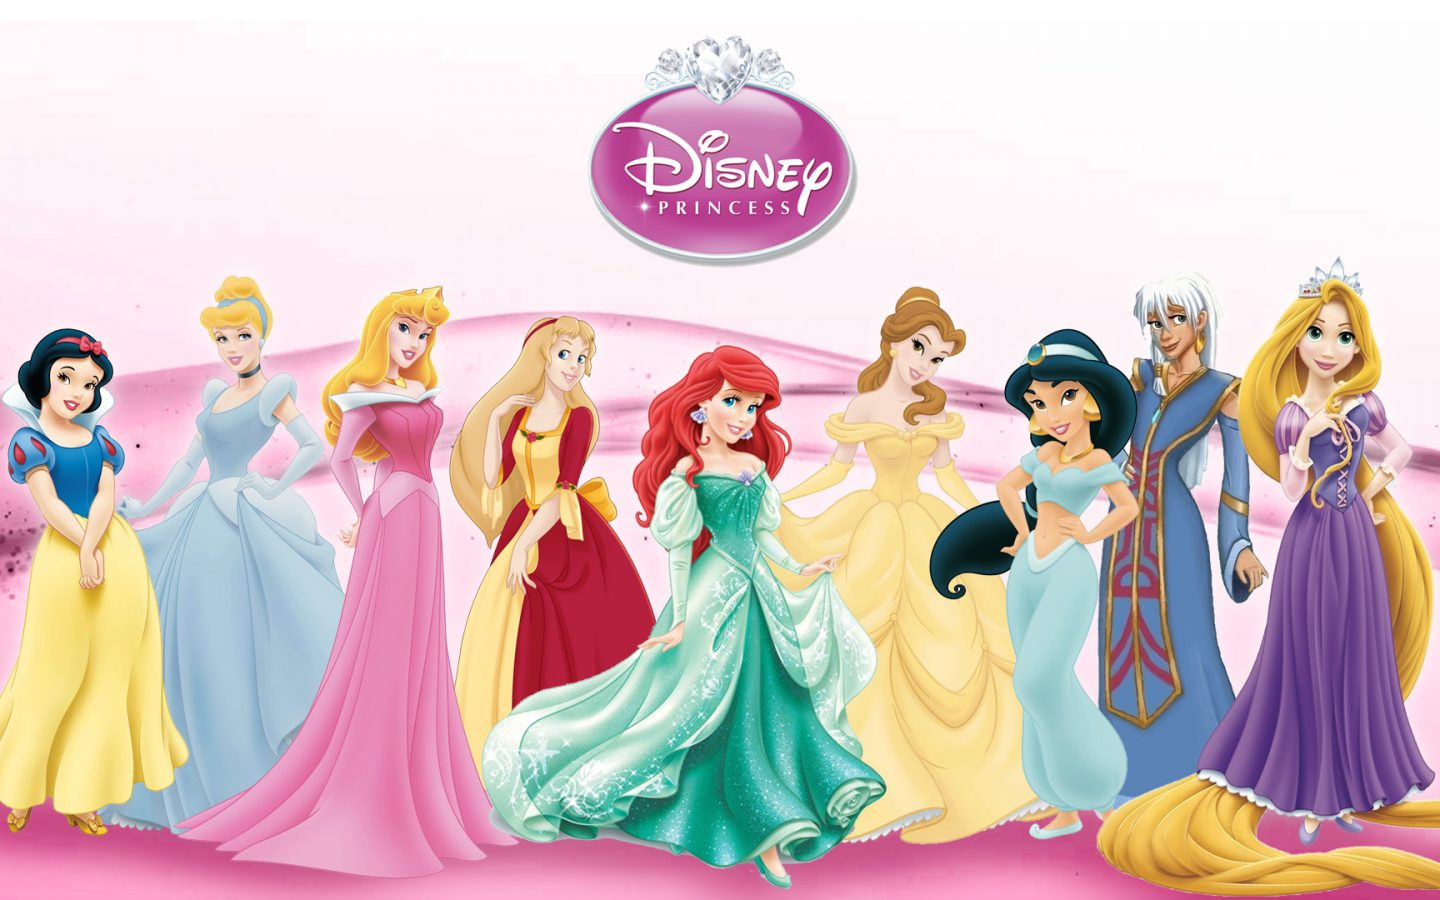 Islamic Quotes Wallpapers Iphone Latest Disney Princess Wallpaper 1920 215 1080 Hd Wallpapers